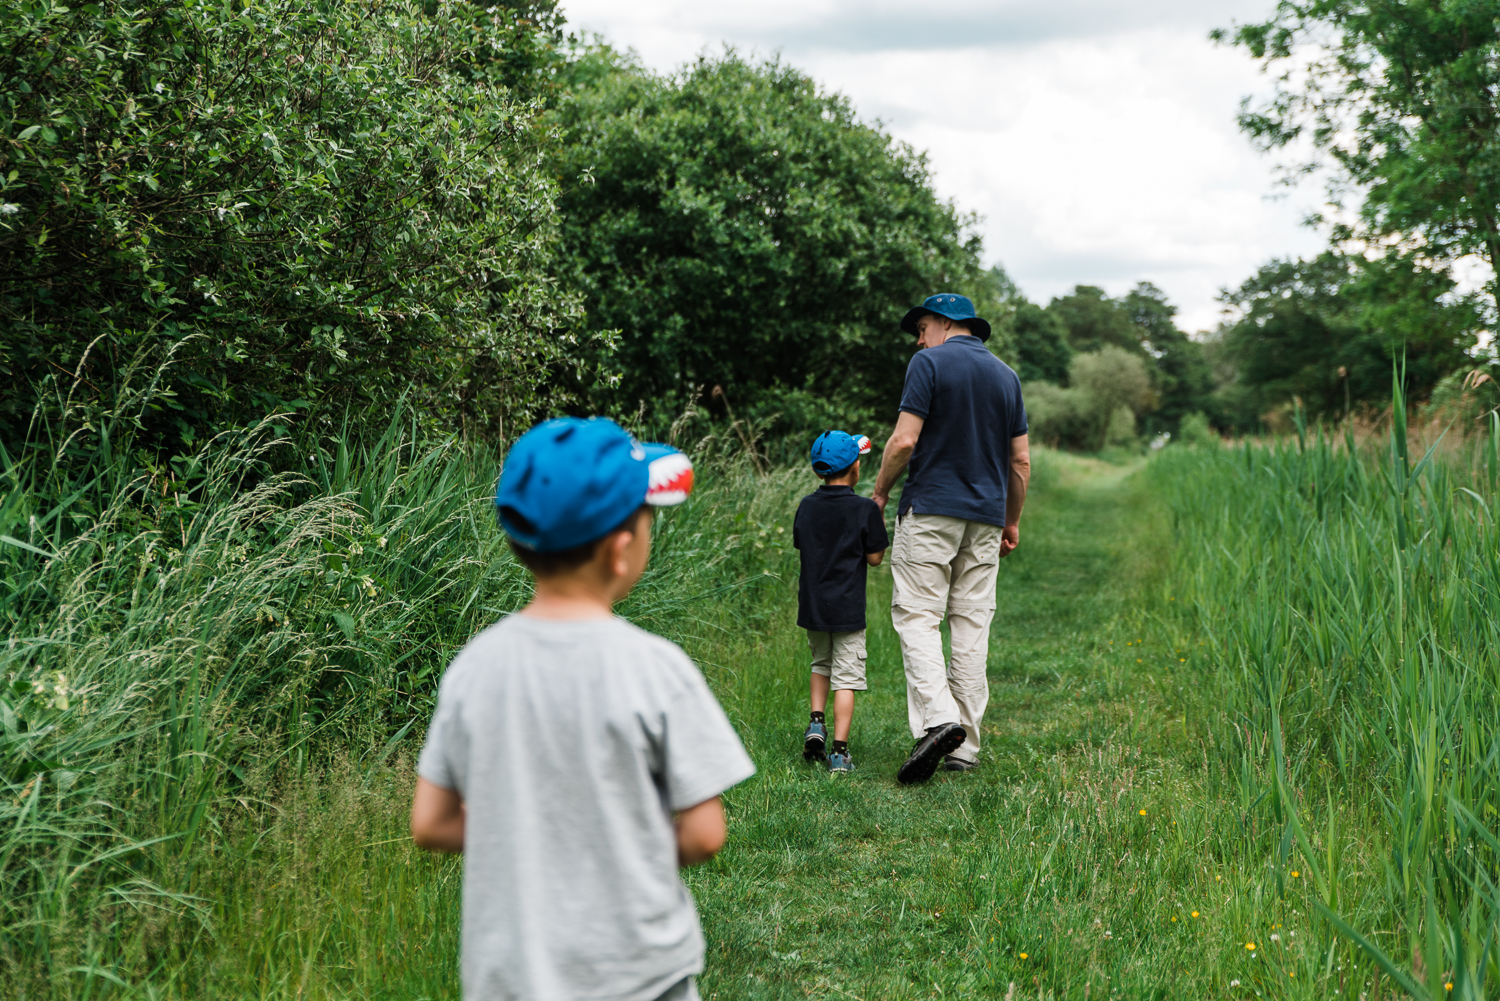 Family out exploring Woodwalton Fen in the summer by Cambridgeshire photographer Diana Hagues